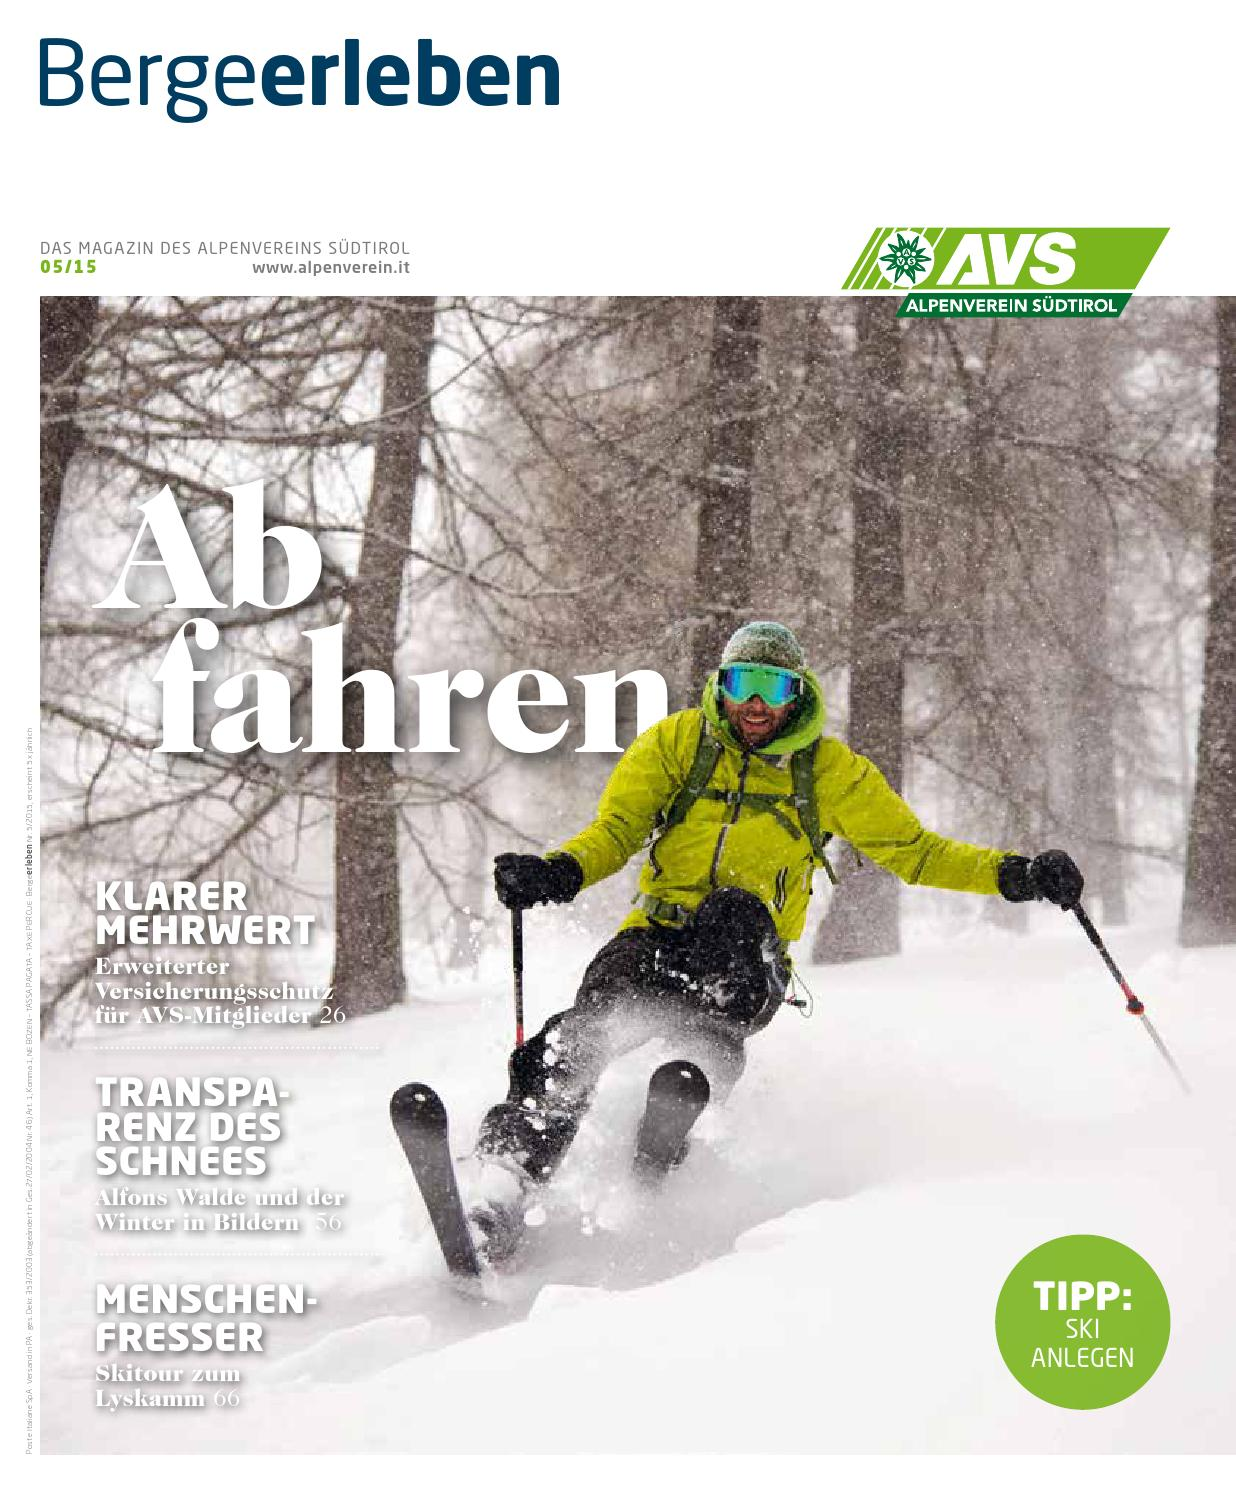 Bergeerleben AVS Magazin November 2015 by Alpenverein